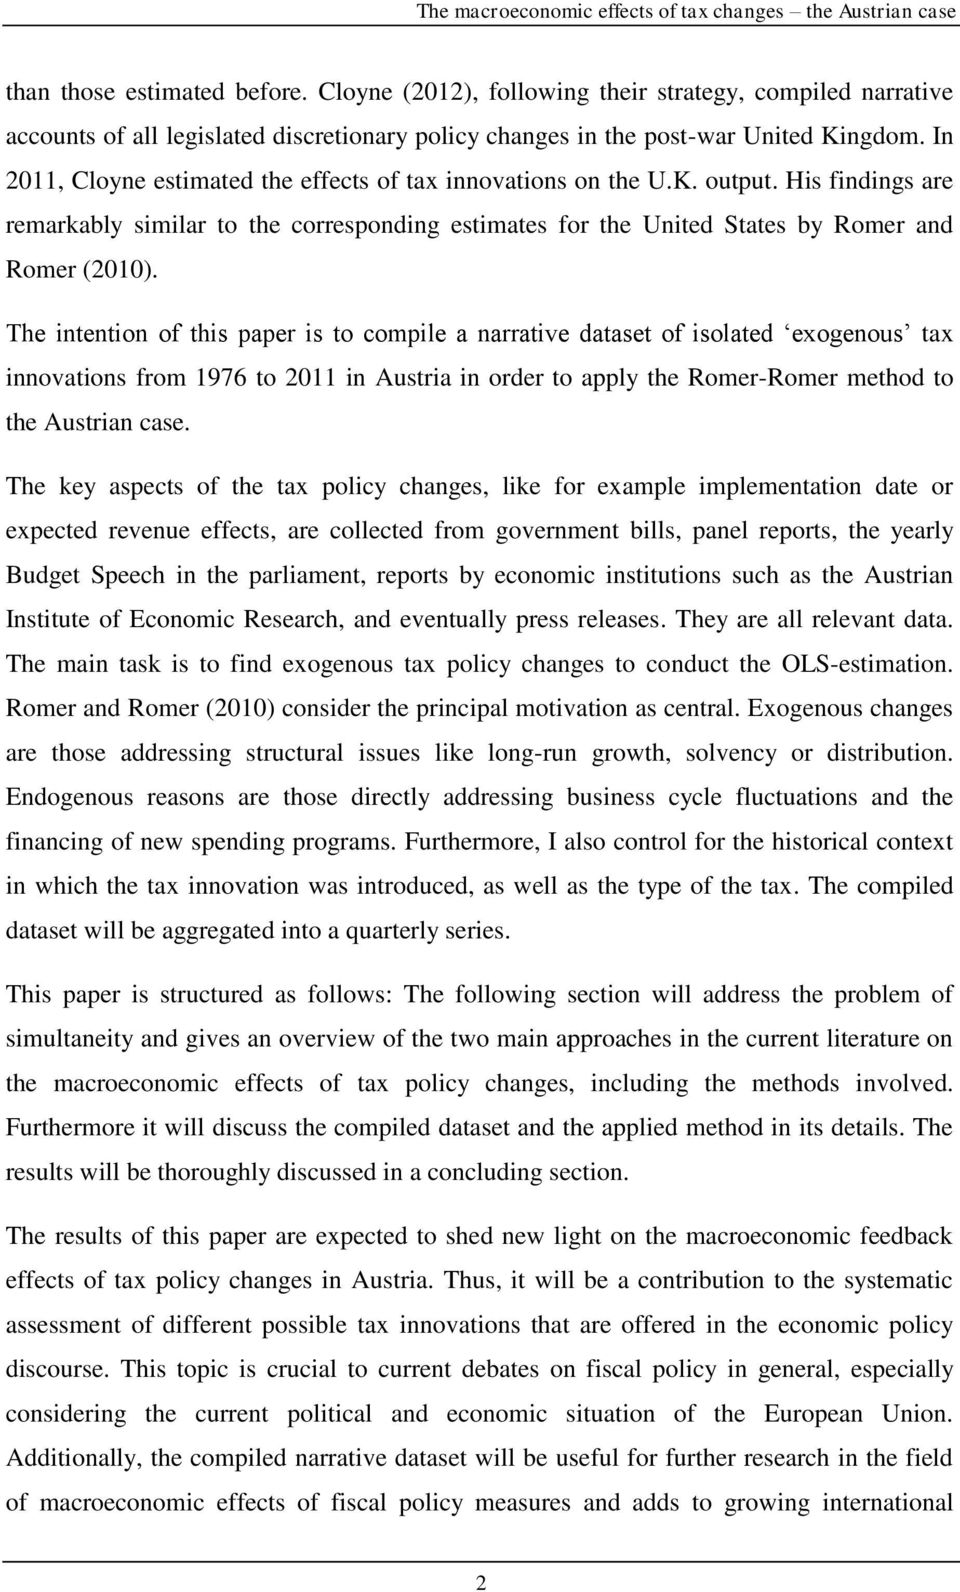 The intention of this paper is to compile a narrative dataset of isolated exogenous tax innovations from 1976 to 2011 in Austria in order to apply the Romer-Romer method to the Austrian case.